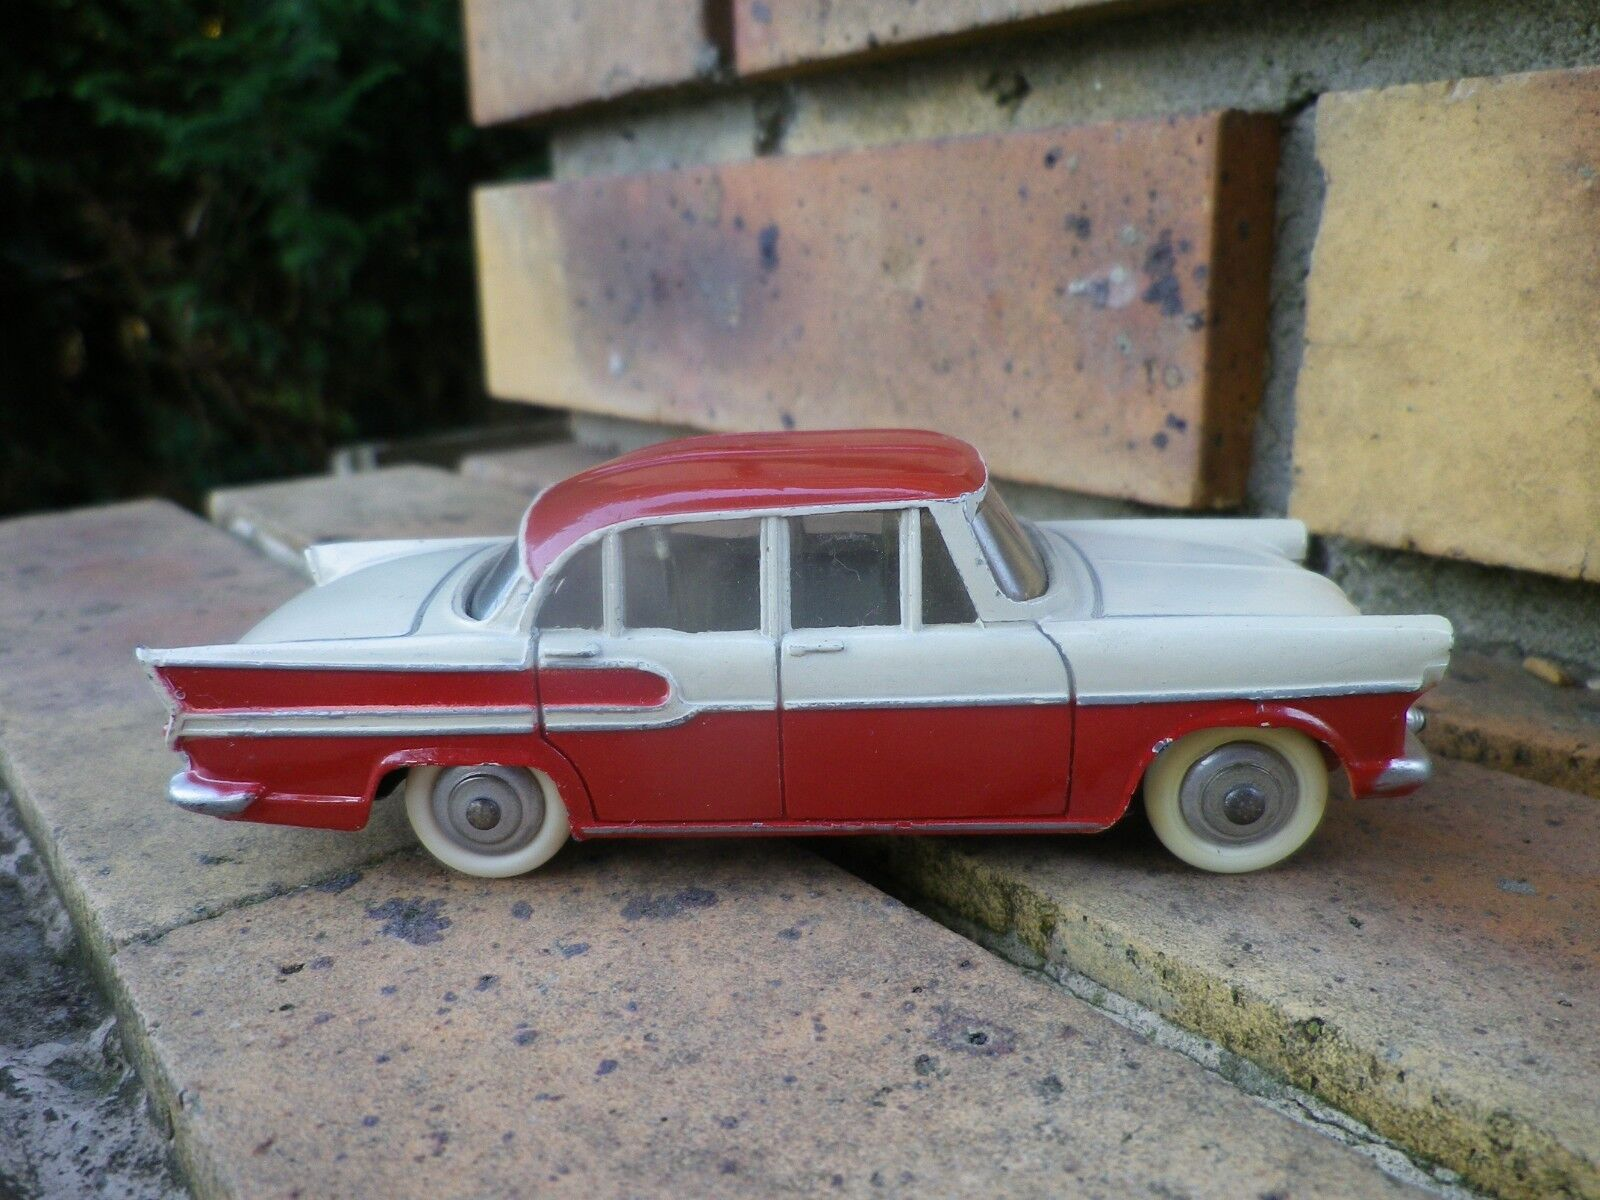 Dinky france 24k simca chambord 1959 like new, without box, see photos.